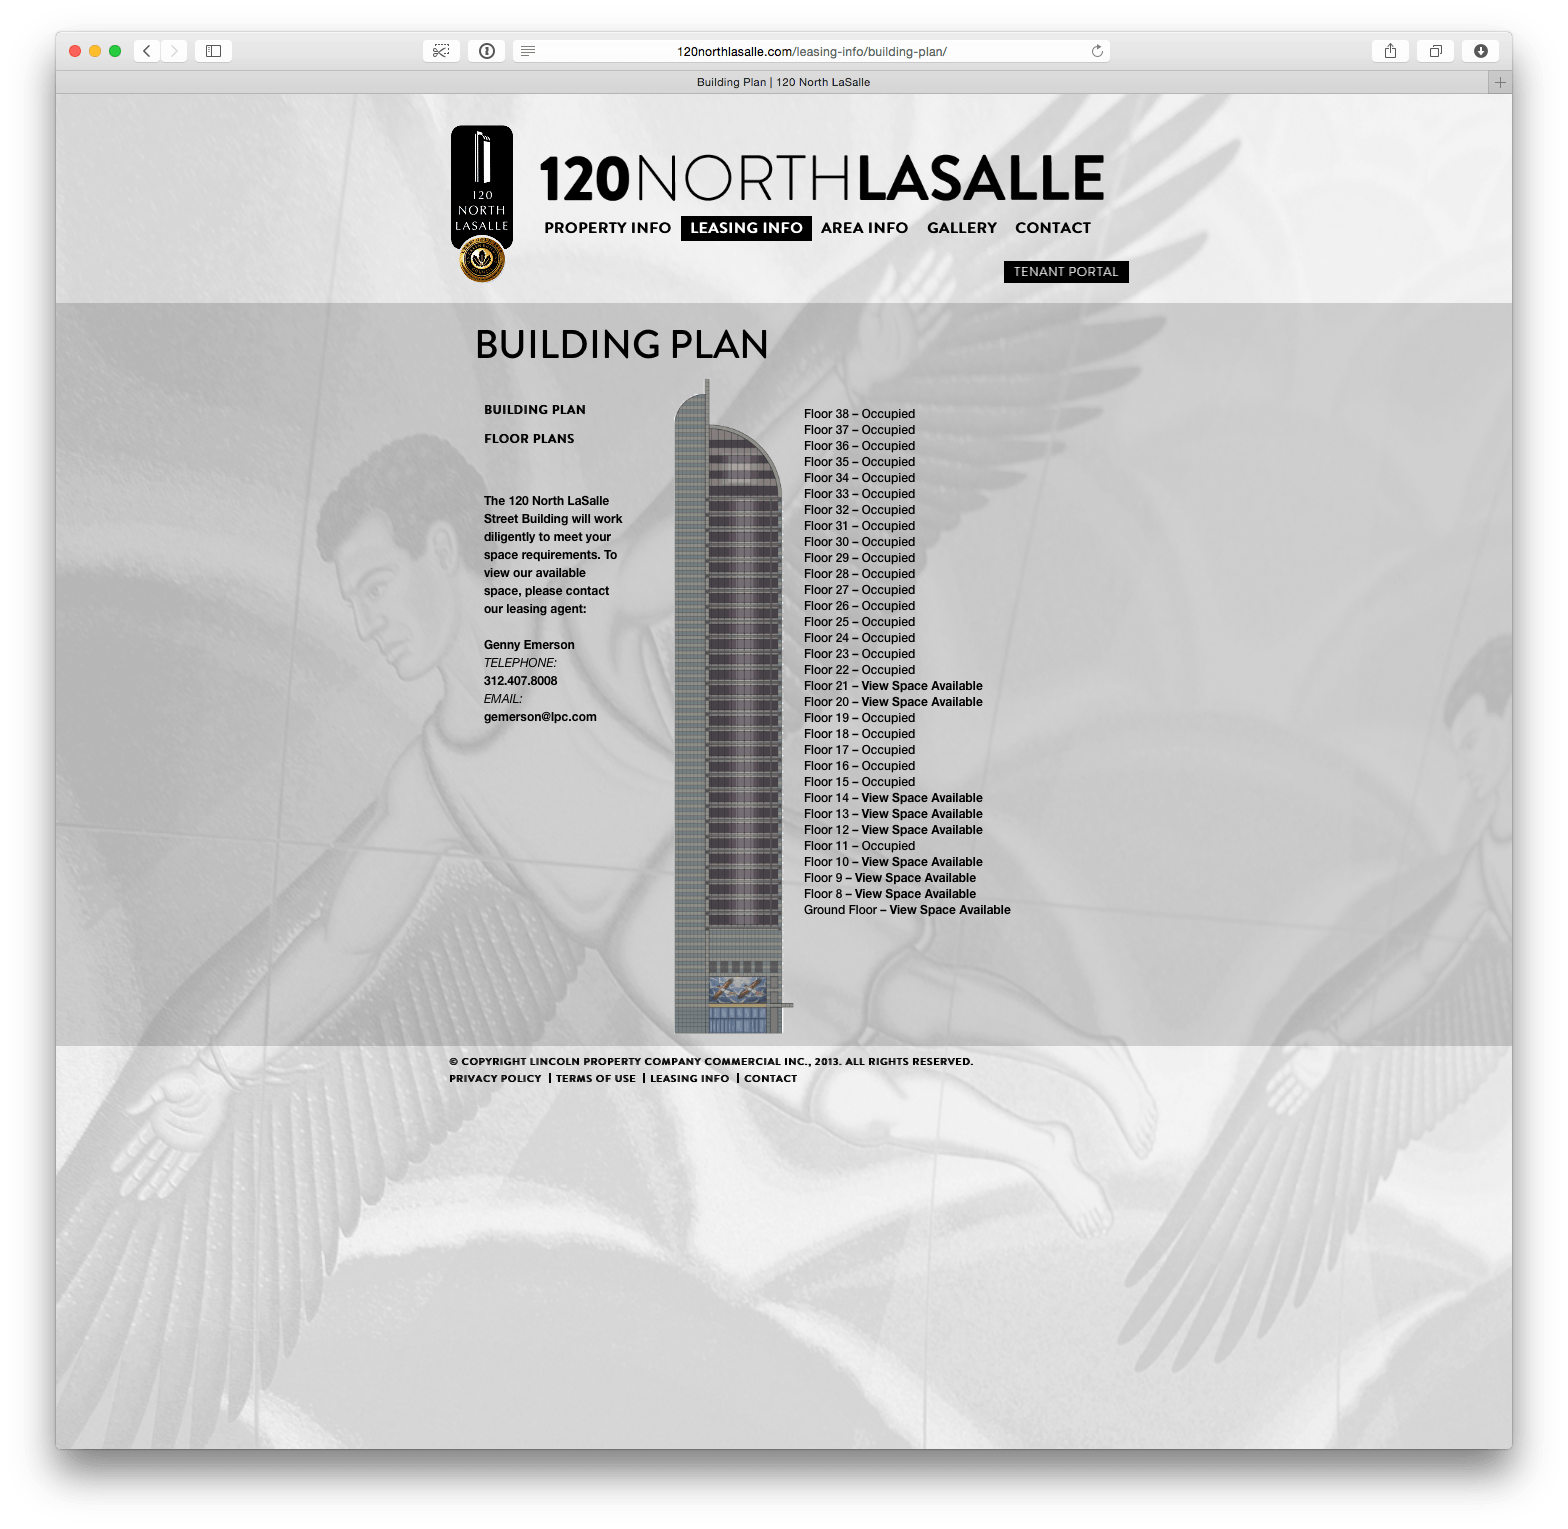 120NorthLasalle.com Building Plan Page